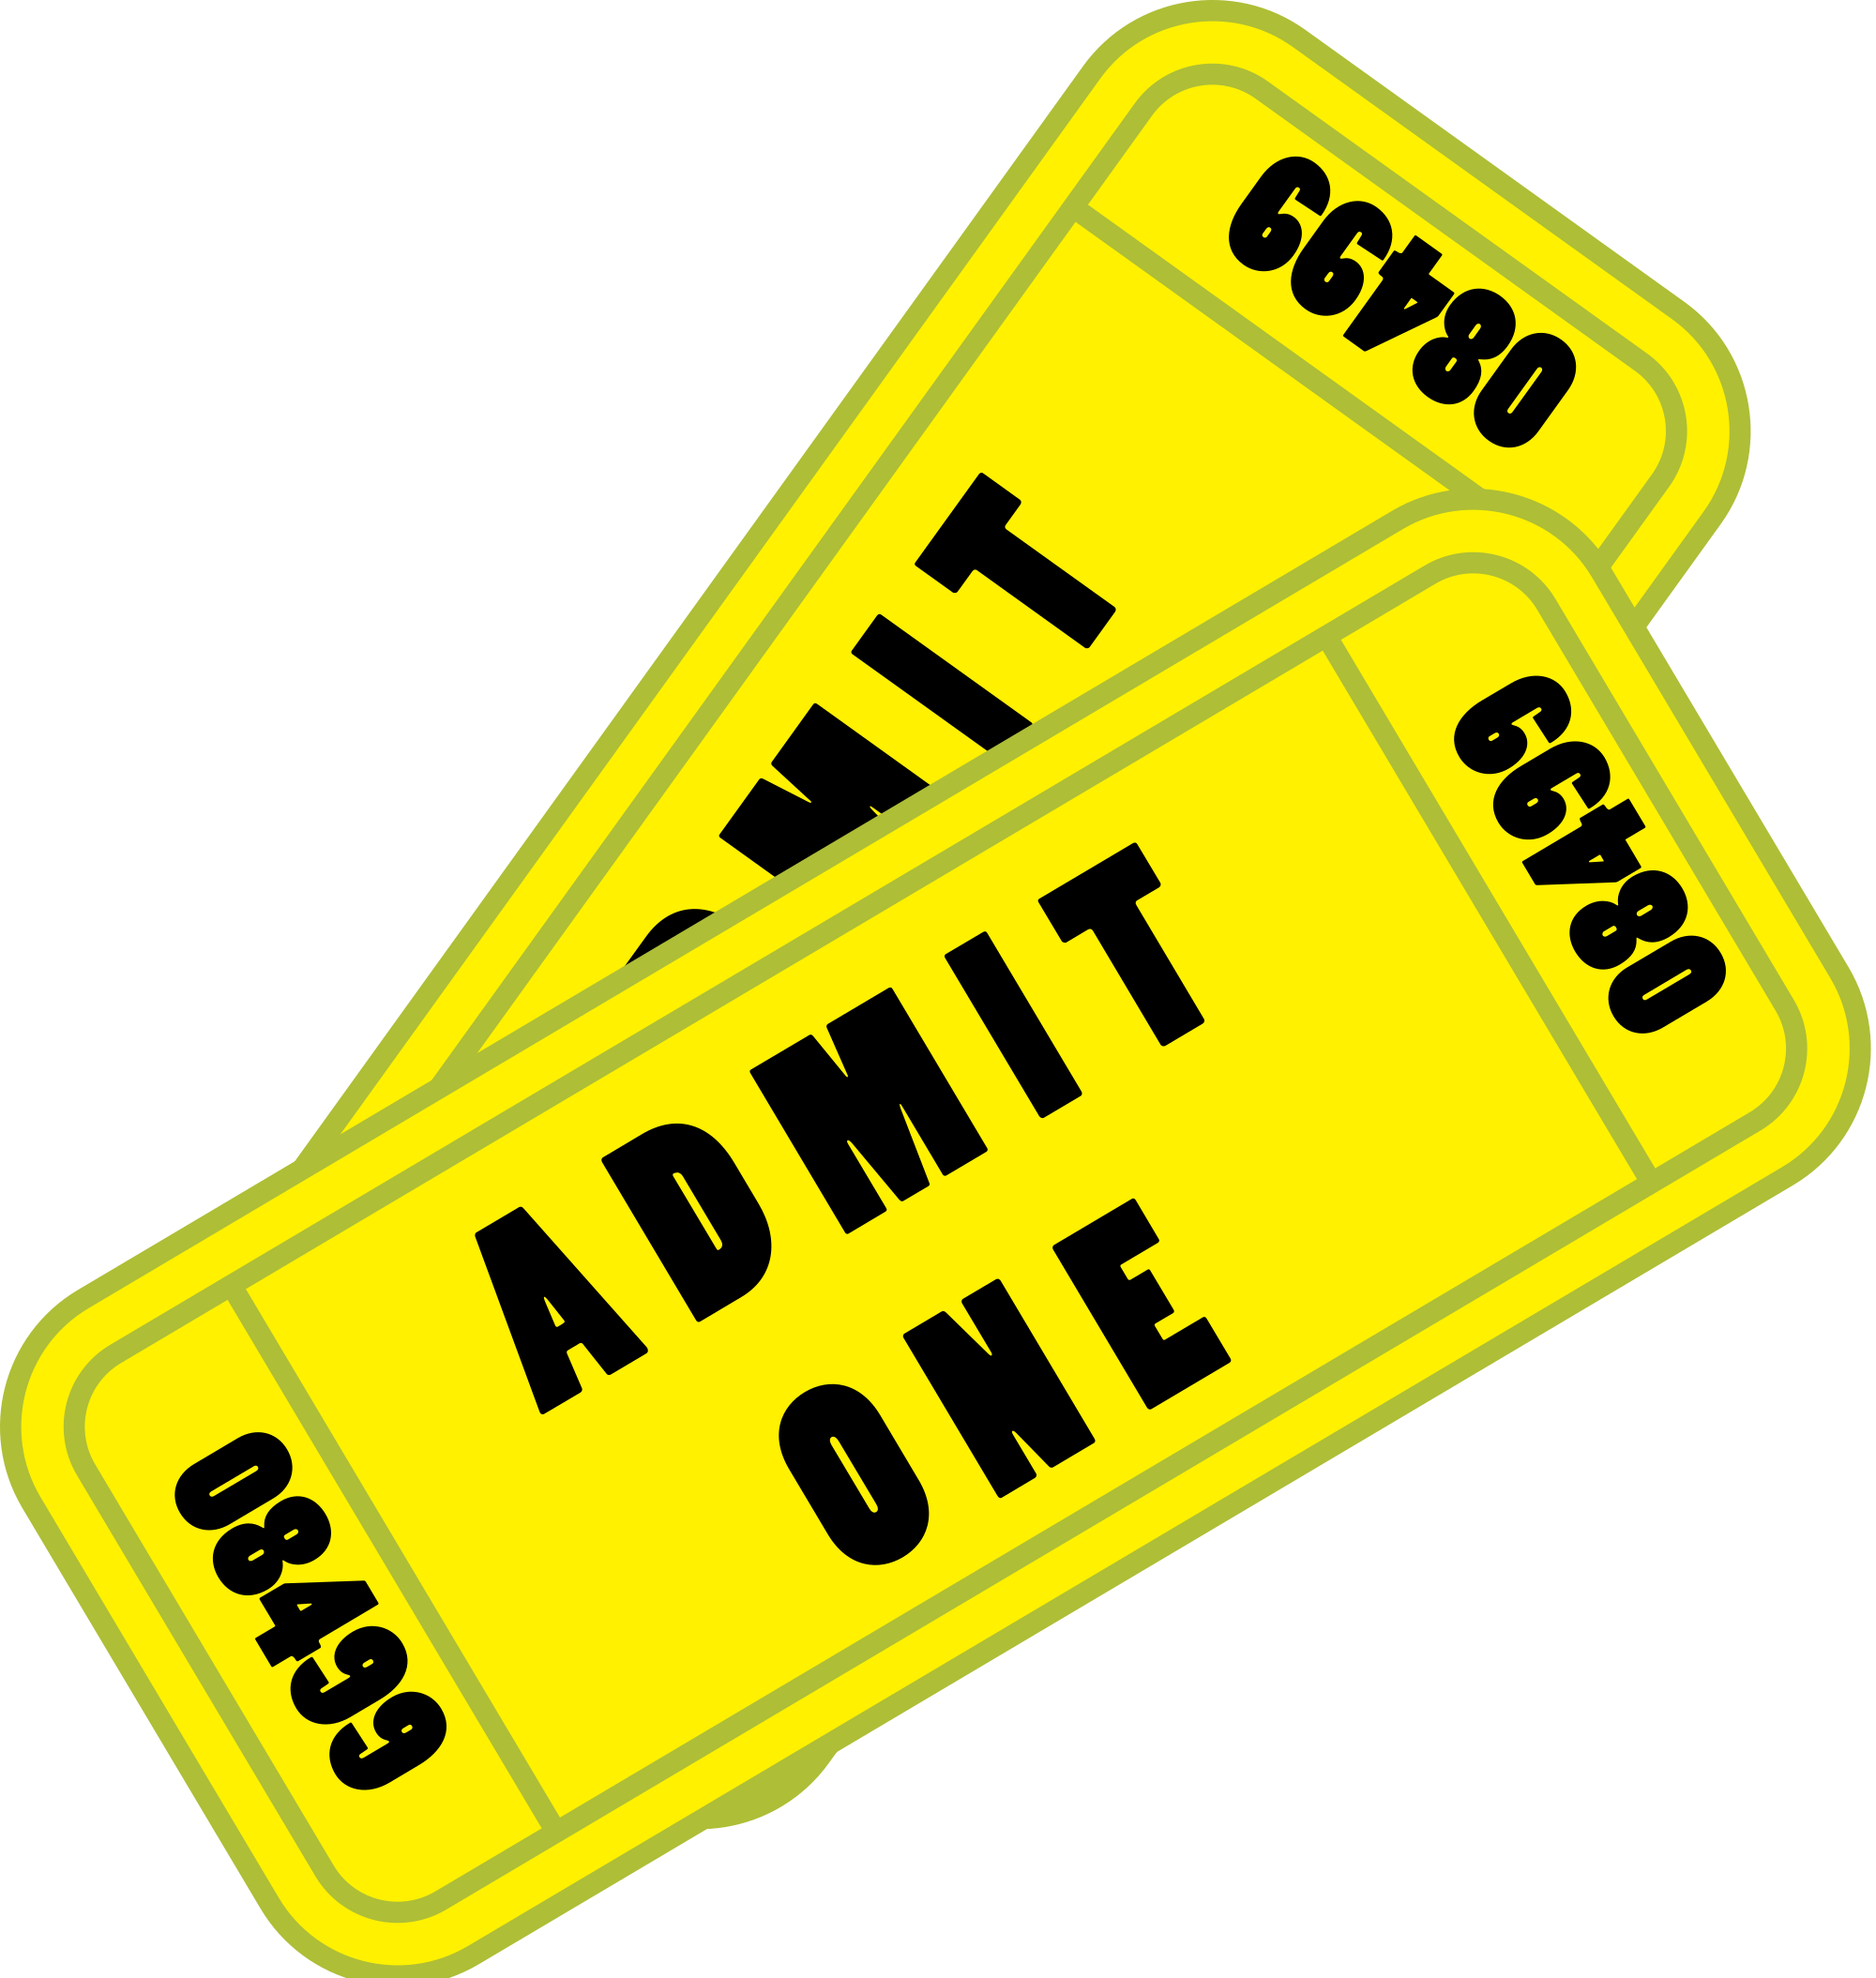 Ticket svg concert. File wikimedia commons open